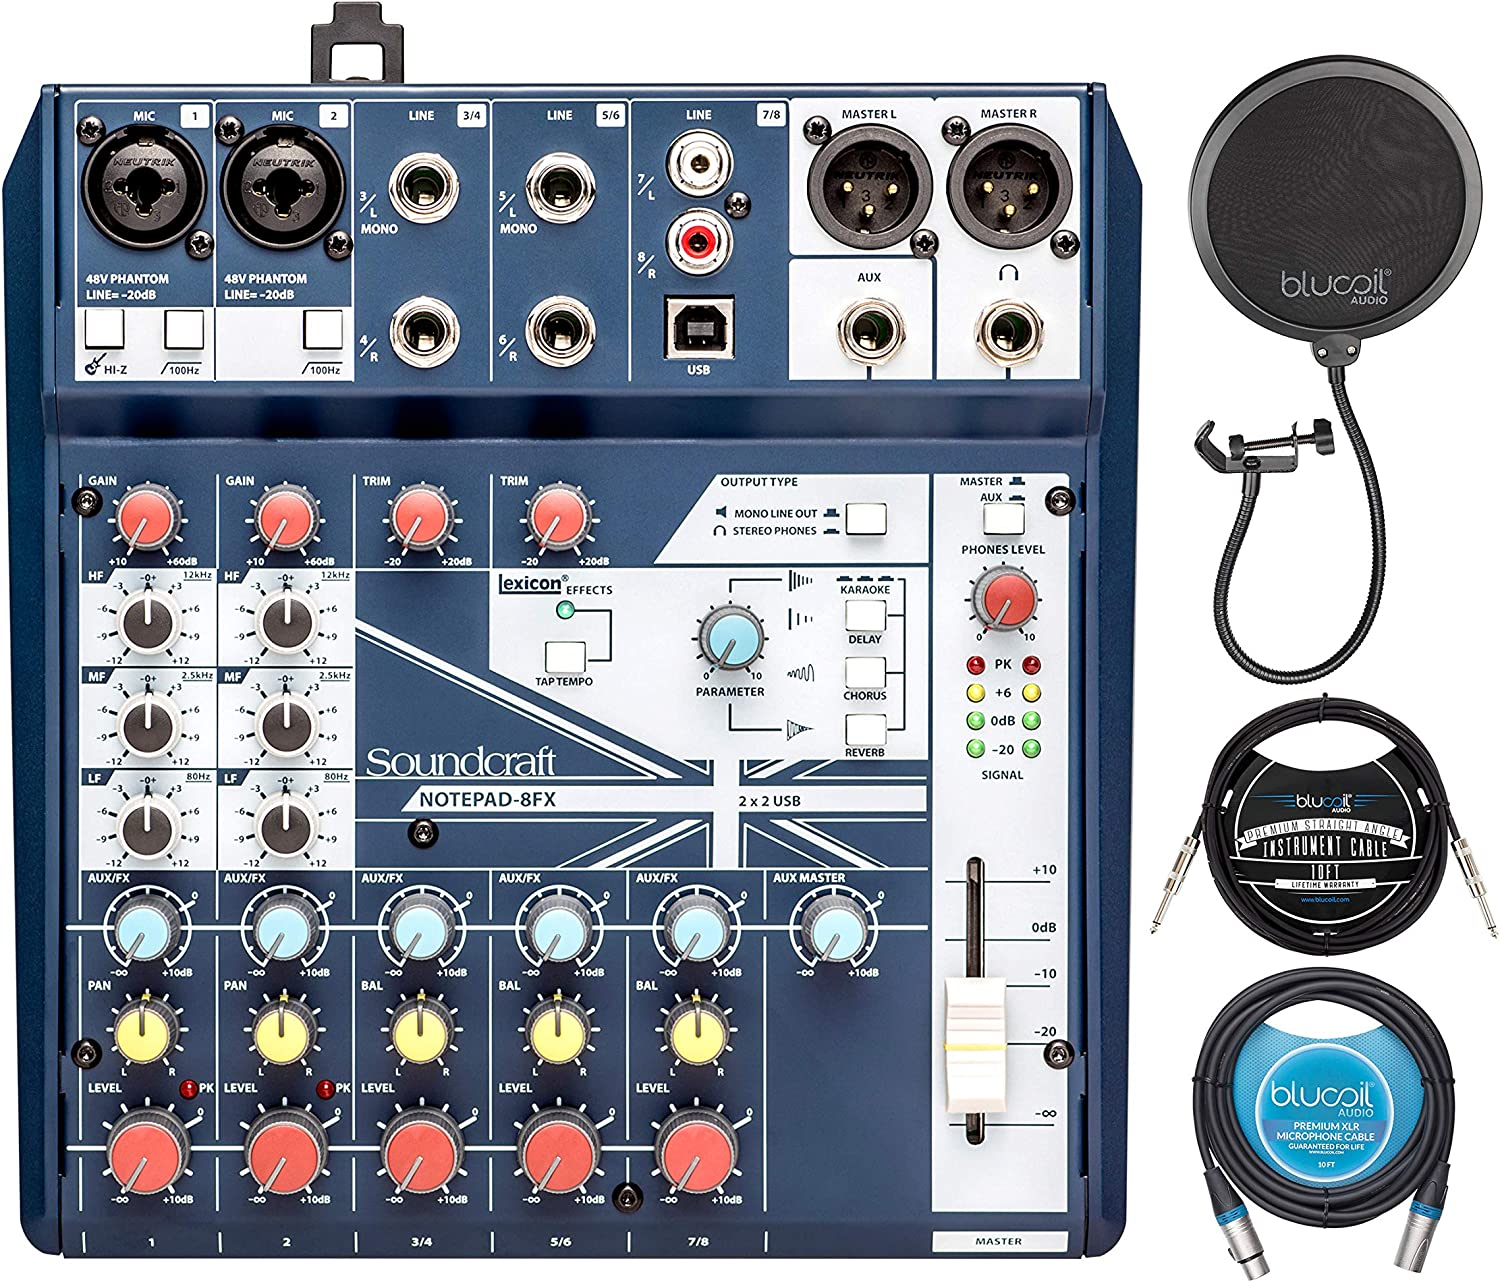 10-FT Balanced XLR Cable Soundcraft Notepad-8FX Mixer with Effects for Windows and Mac Bundle with Blucoil Pop Filter Windscreen and 10-FT Straight Instrument Cable 1//4in